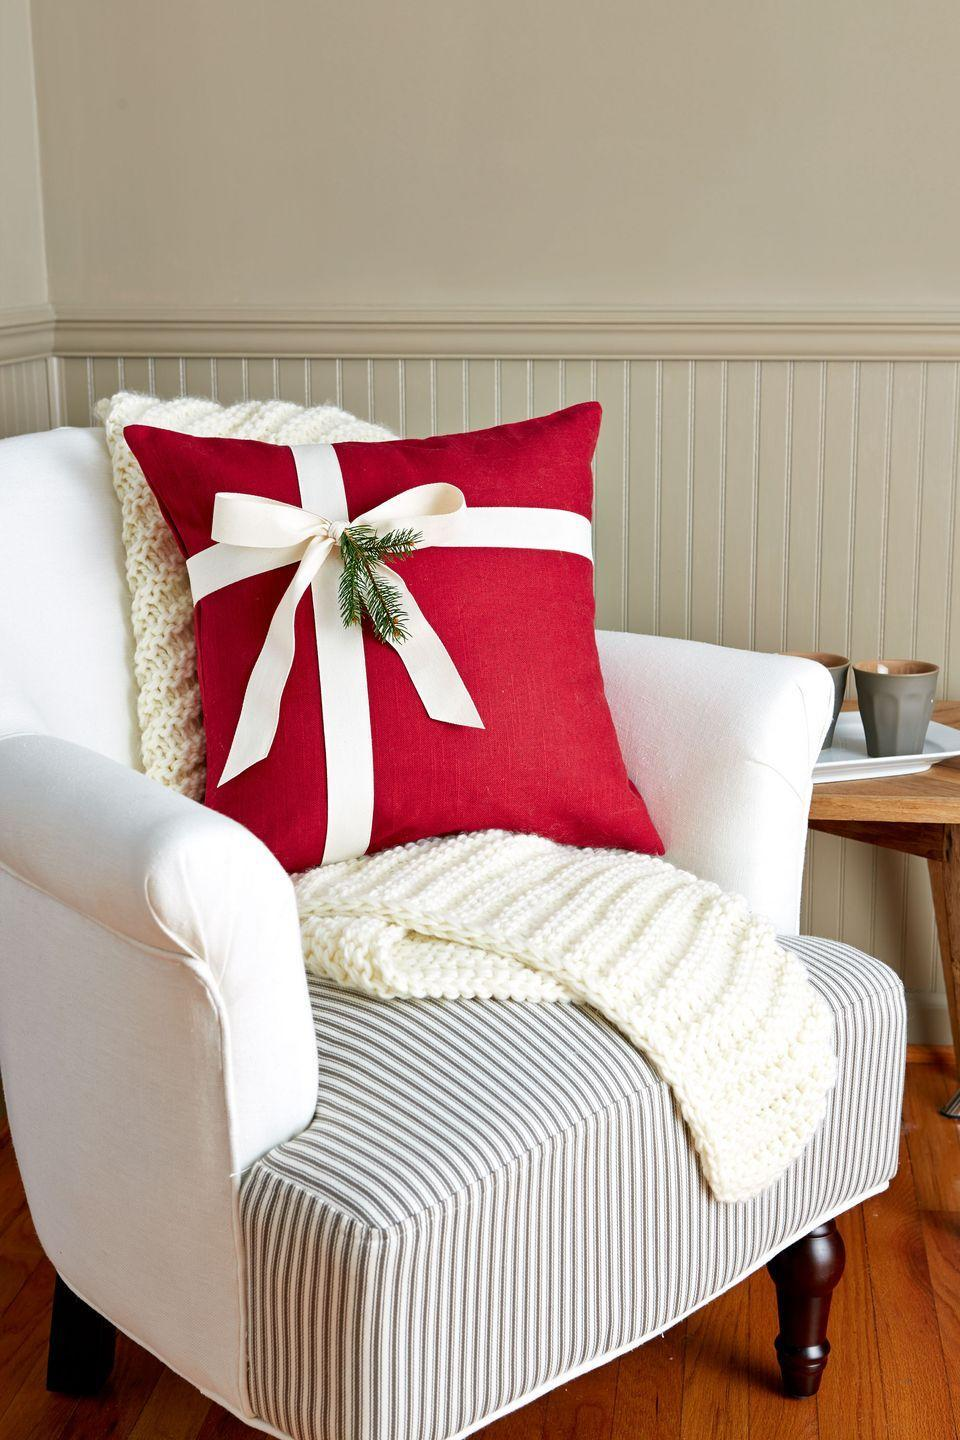 """<p>Take a plain <a href=""""https://www.amazon.com/Decorative-Cushion-Pillow-Sleeve-Percent/dp/B019CSMYYA/?tag=syn-yahoo-20&ascsubtag=%5Bartid%7C10050.g.645%5Bsrc%7Cyahoo-us"""" rel=""""nofollow noopener"""" target=""""_blank"""" data-ylk=""""slk:pillow"""" class=""""link rapid-noclick-resp"""">pillow</a> from ho-hum to ho-ho-ho by simply wrapping it like a present. (Yes, it's that simple.) Add a sprig of greenery or a festive ornament for an extra bit of flourish.</p><p><strong><a class=""""link rapid-noclick-resp"""" href=""""https://www.amazon.com/Decorative-Cushion-Pillow-Sleeve-Percent/dp/B019CSMYYA/?tag=syn-yahoo-20&ascsubtag=%5Bartid%7C10050.g.645%5Bsrc%7Cyahoo-us"""" rel=""""nofollow noopener"""" target=""""_blank"""" data-ylk=""""slk:SHOP PILLOWS"""">SHOP PILLOWS</a></strong></p>"""